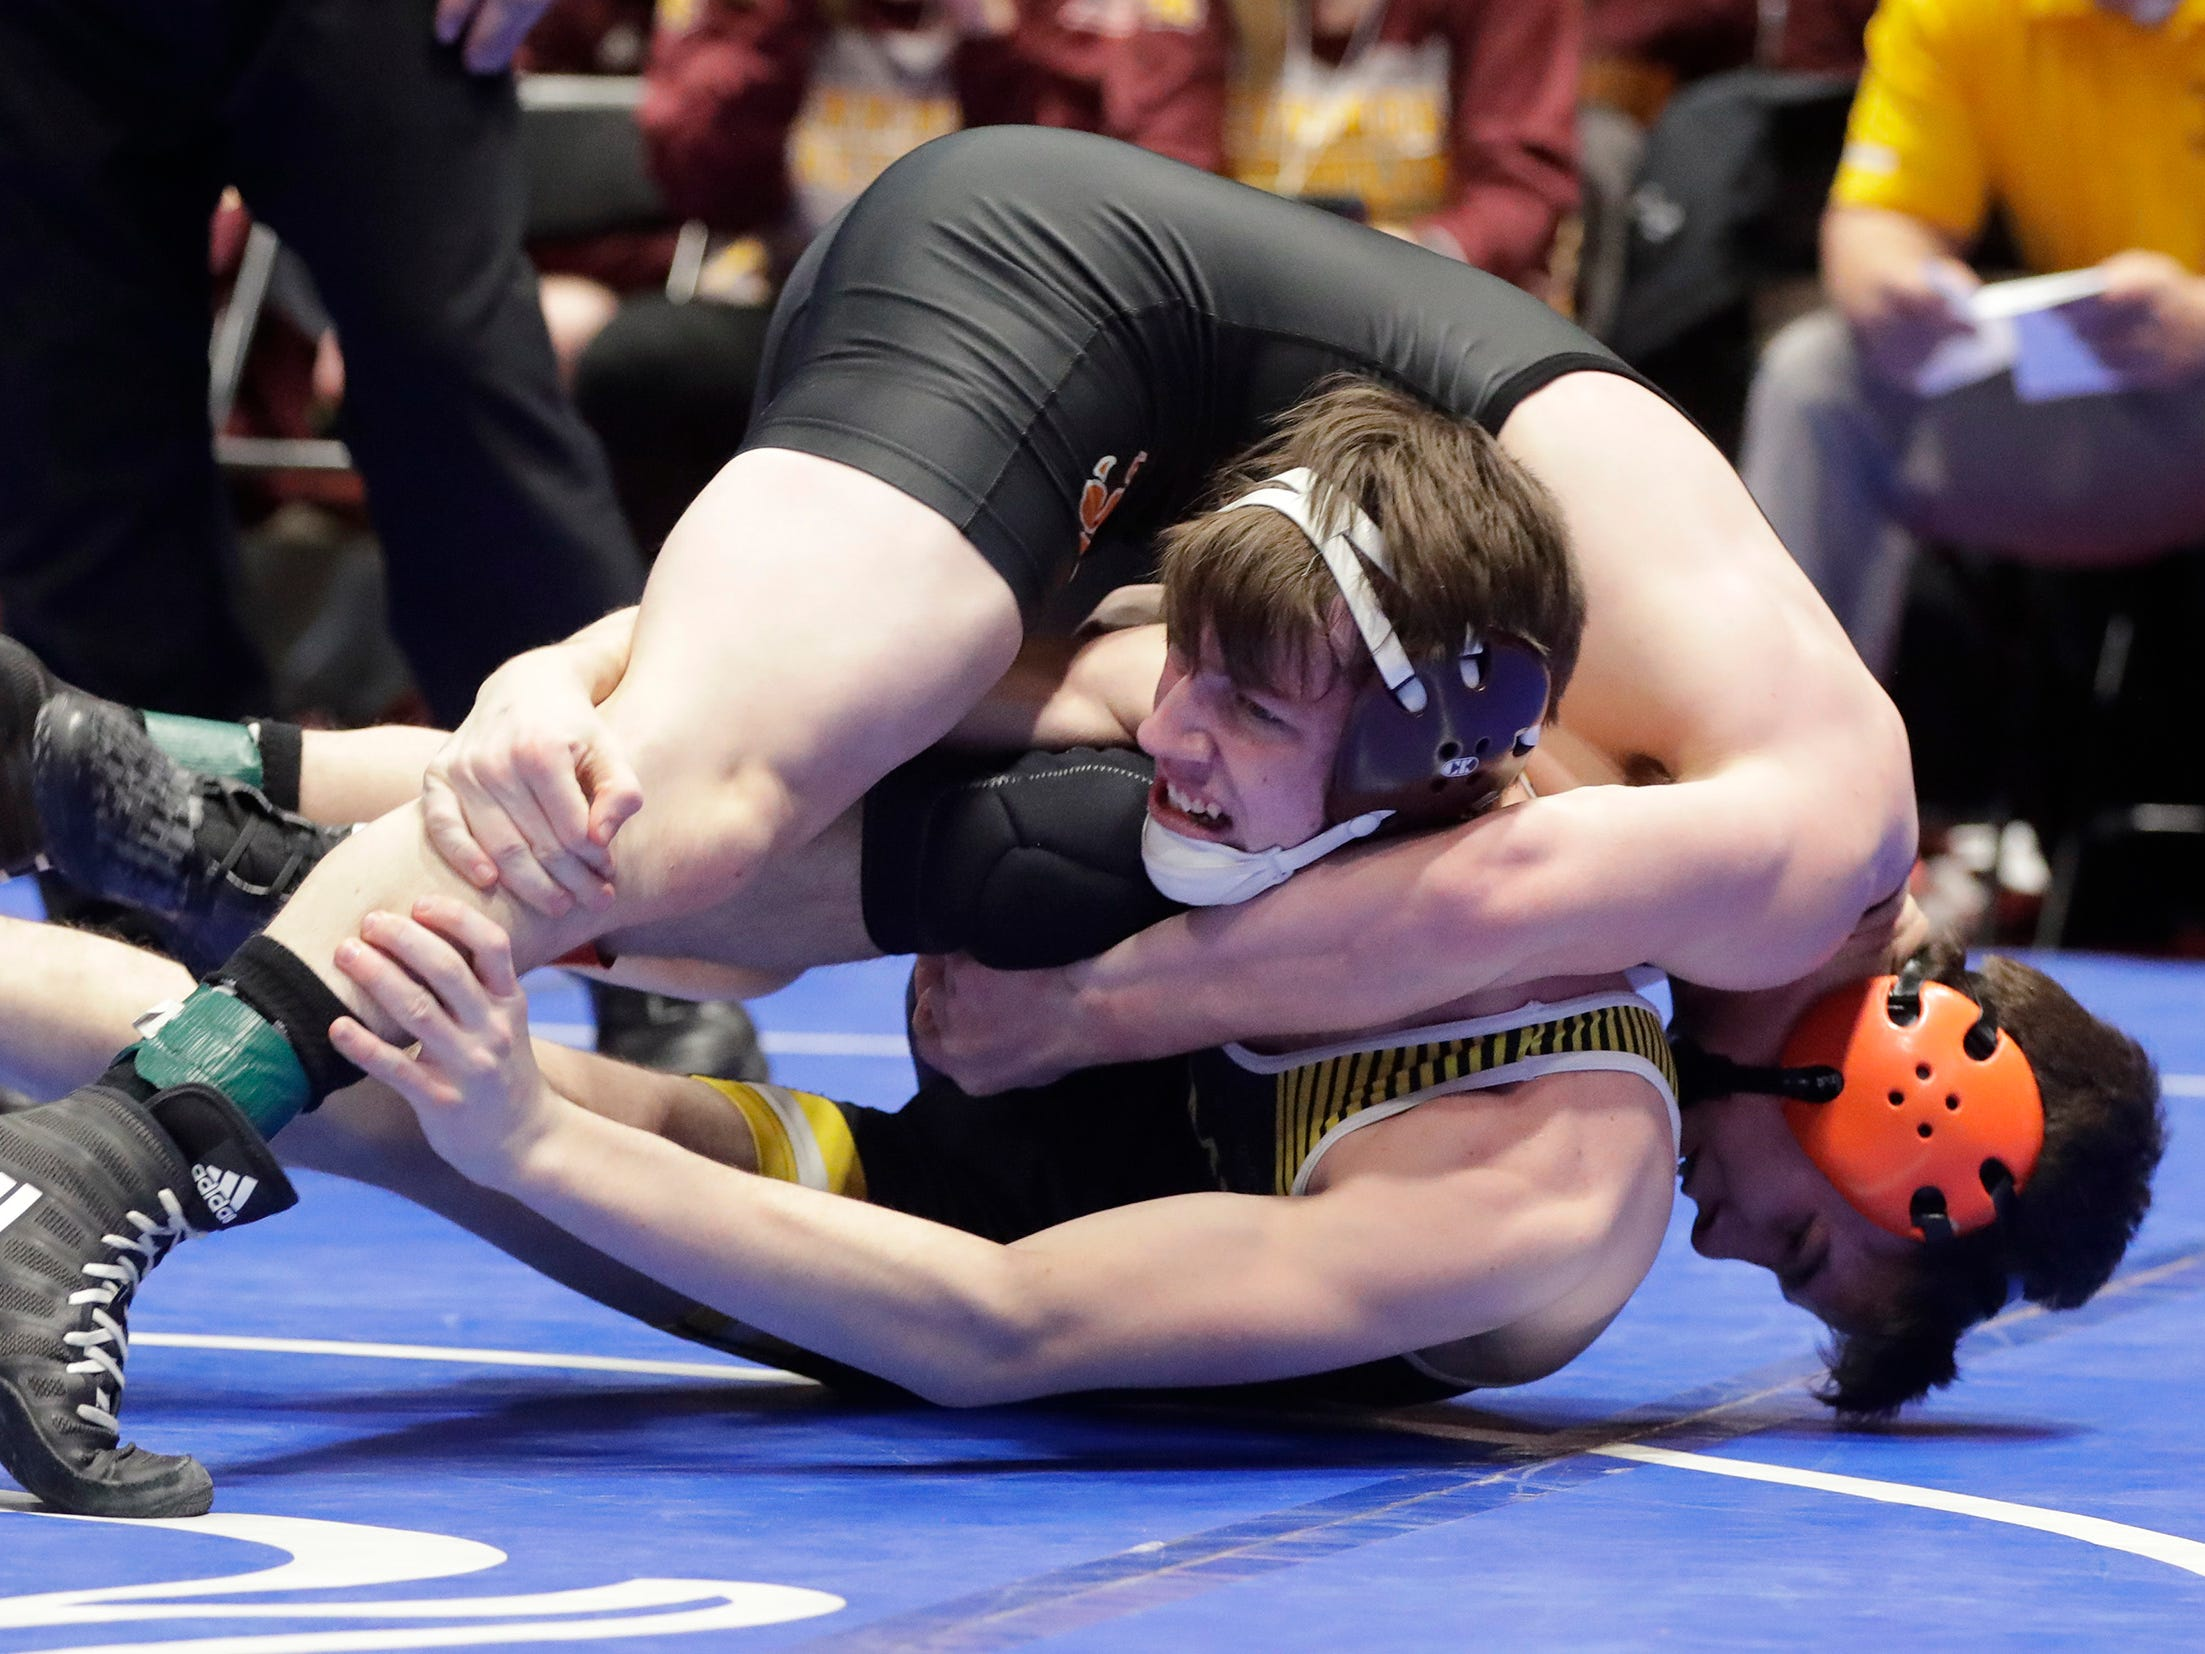 Stratford's Max Schwabe, right, wrestles Fennimore's Kohl Wardell in the 132-pound class, Saturday, March 2, 2019, in Madison, Wis.